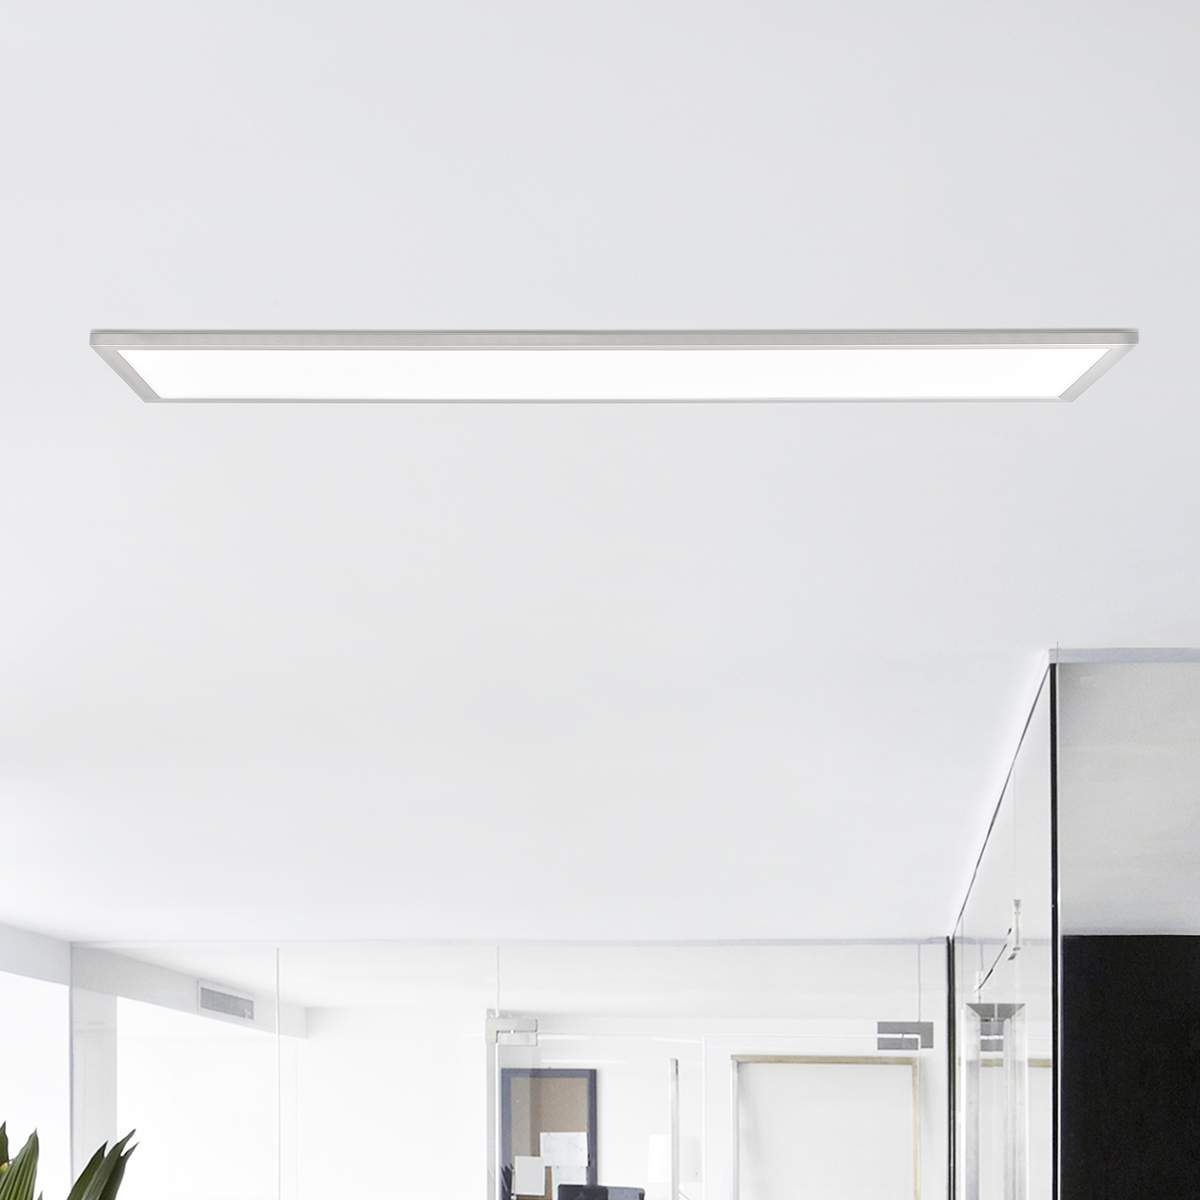 Universelles LED Panel All in one, BAP, tageslicht von EGG